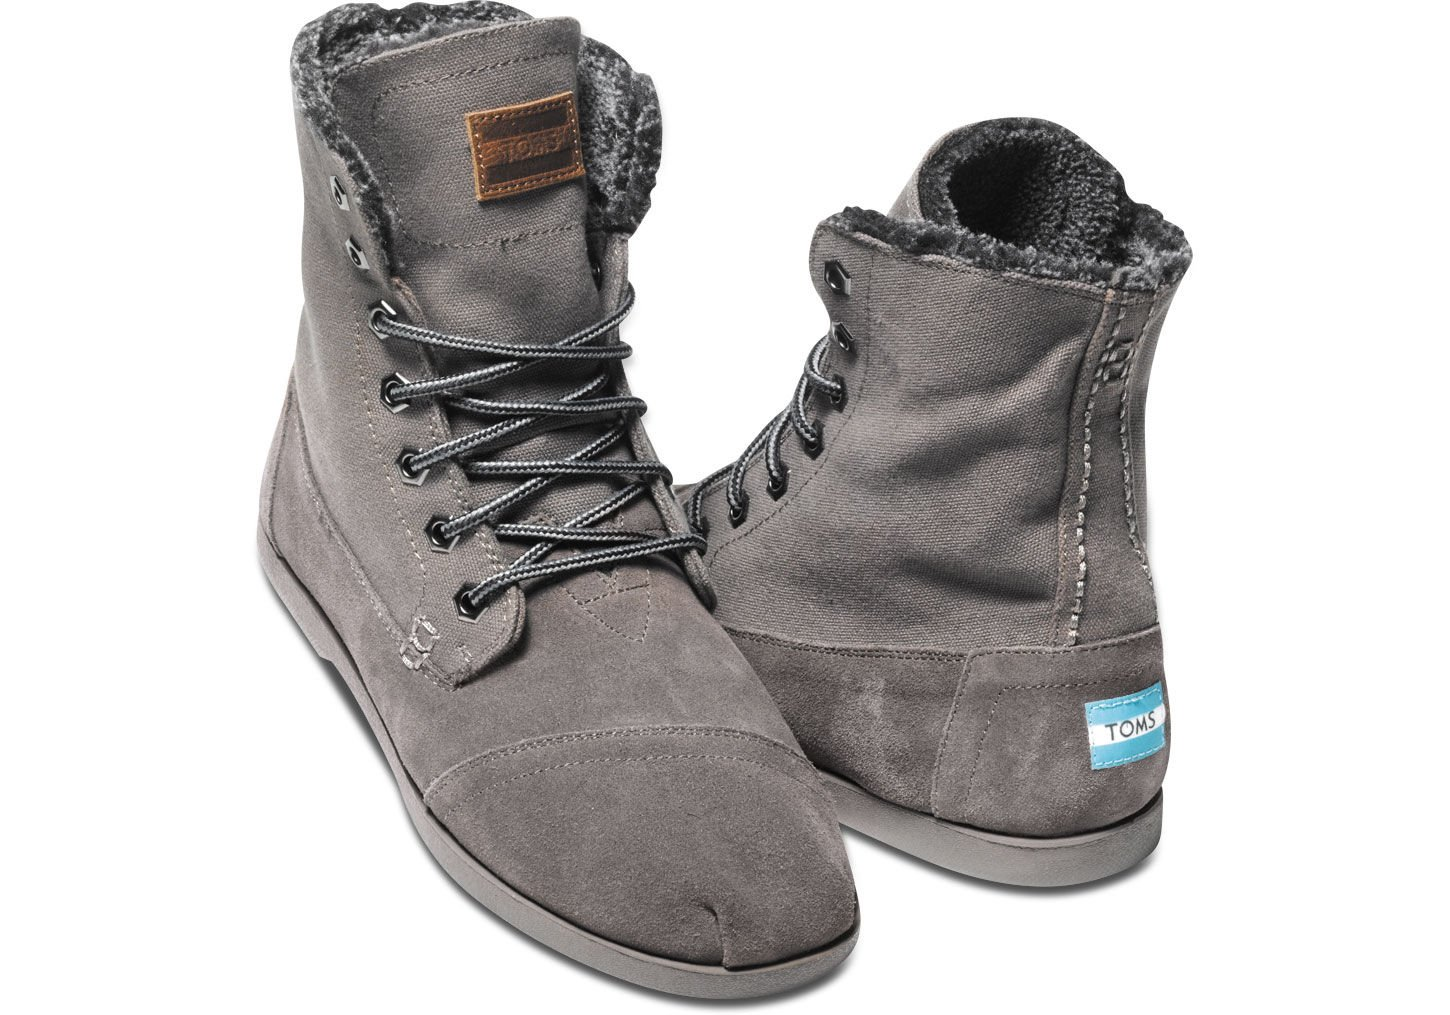 Lyst Toms Ash Canvas Suede Utility Boot In Gray For Men